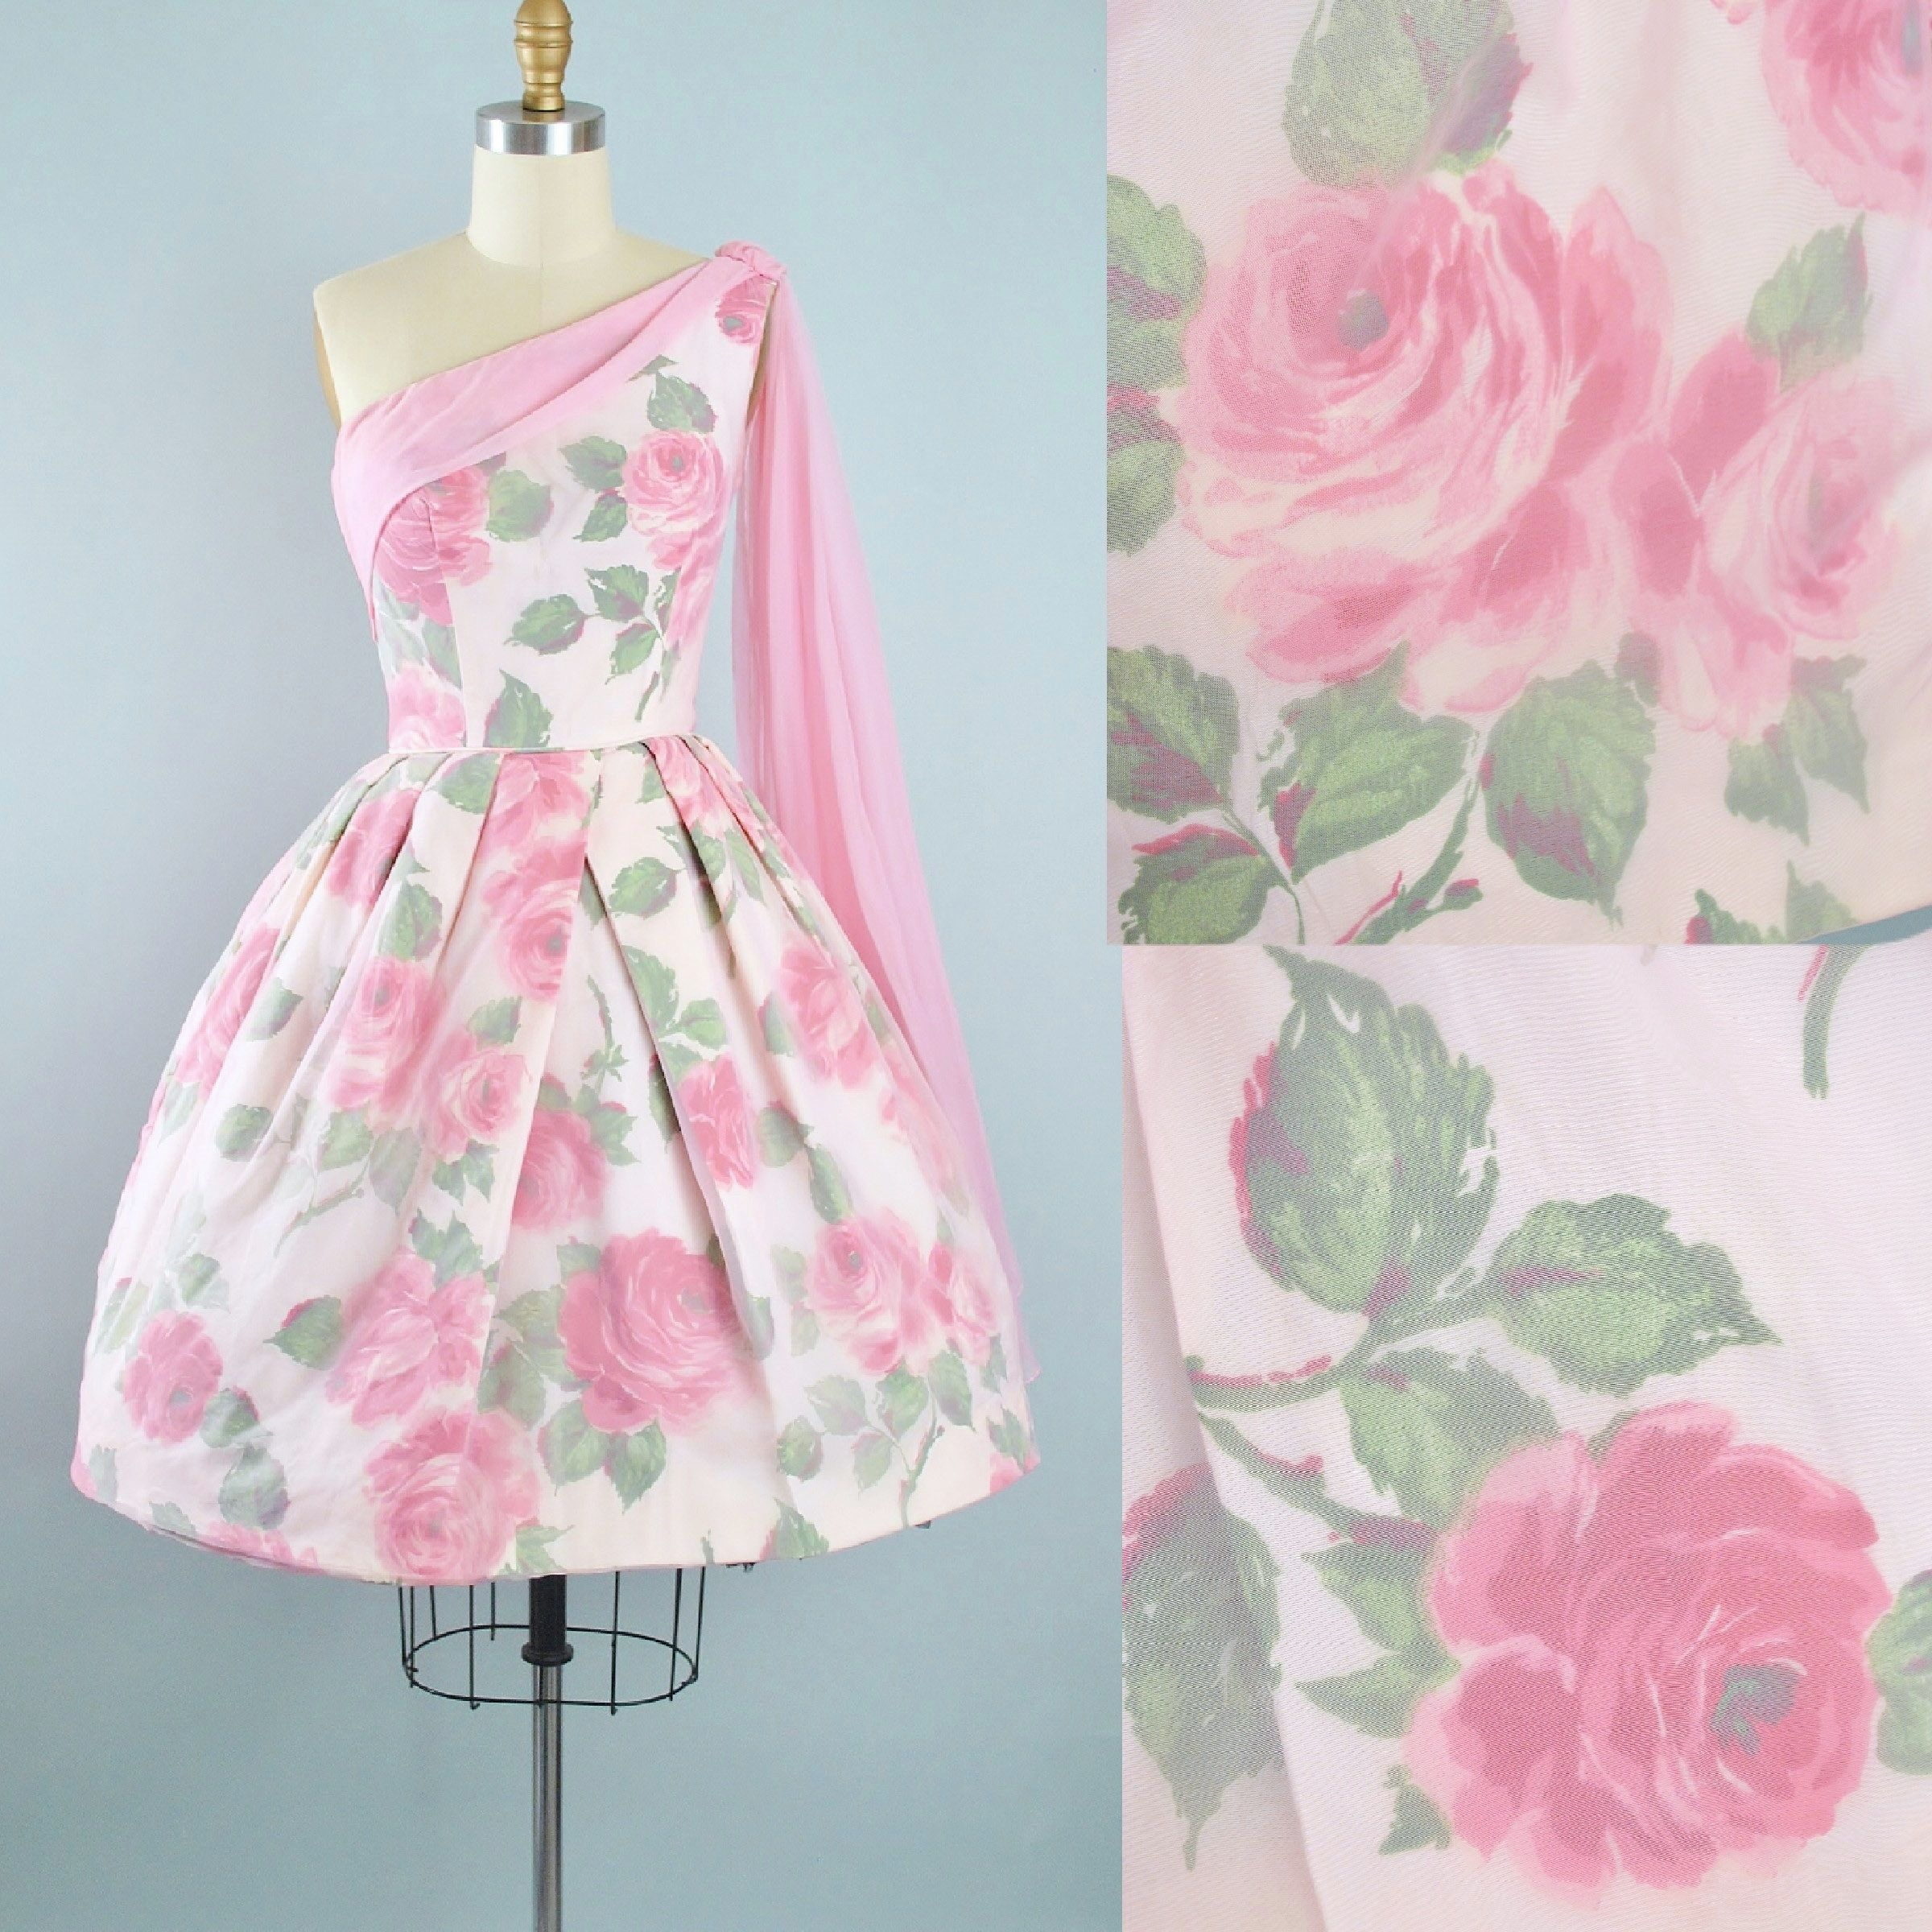 Vintage 50s ROSE Print Dress / 1950s Pink Chiffon Floral Roses ...